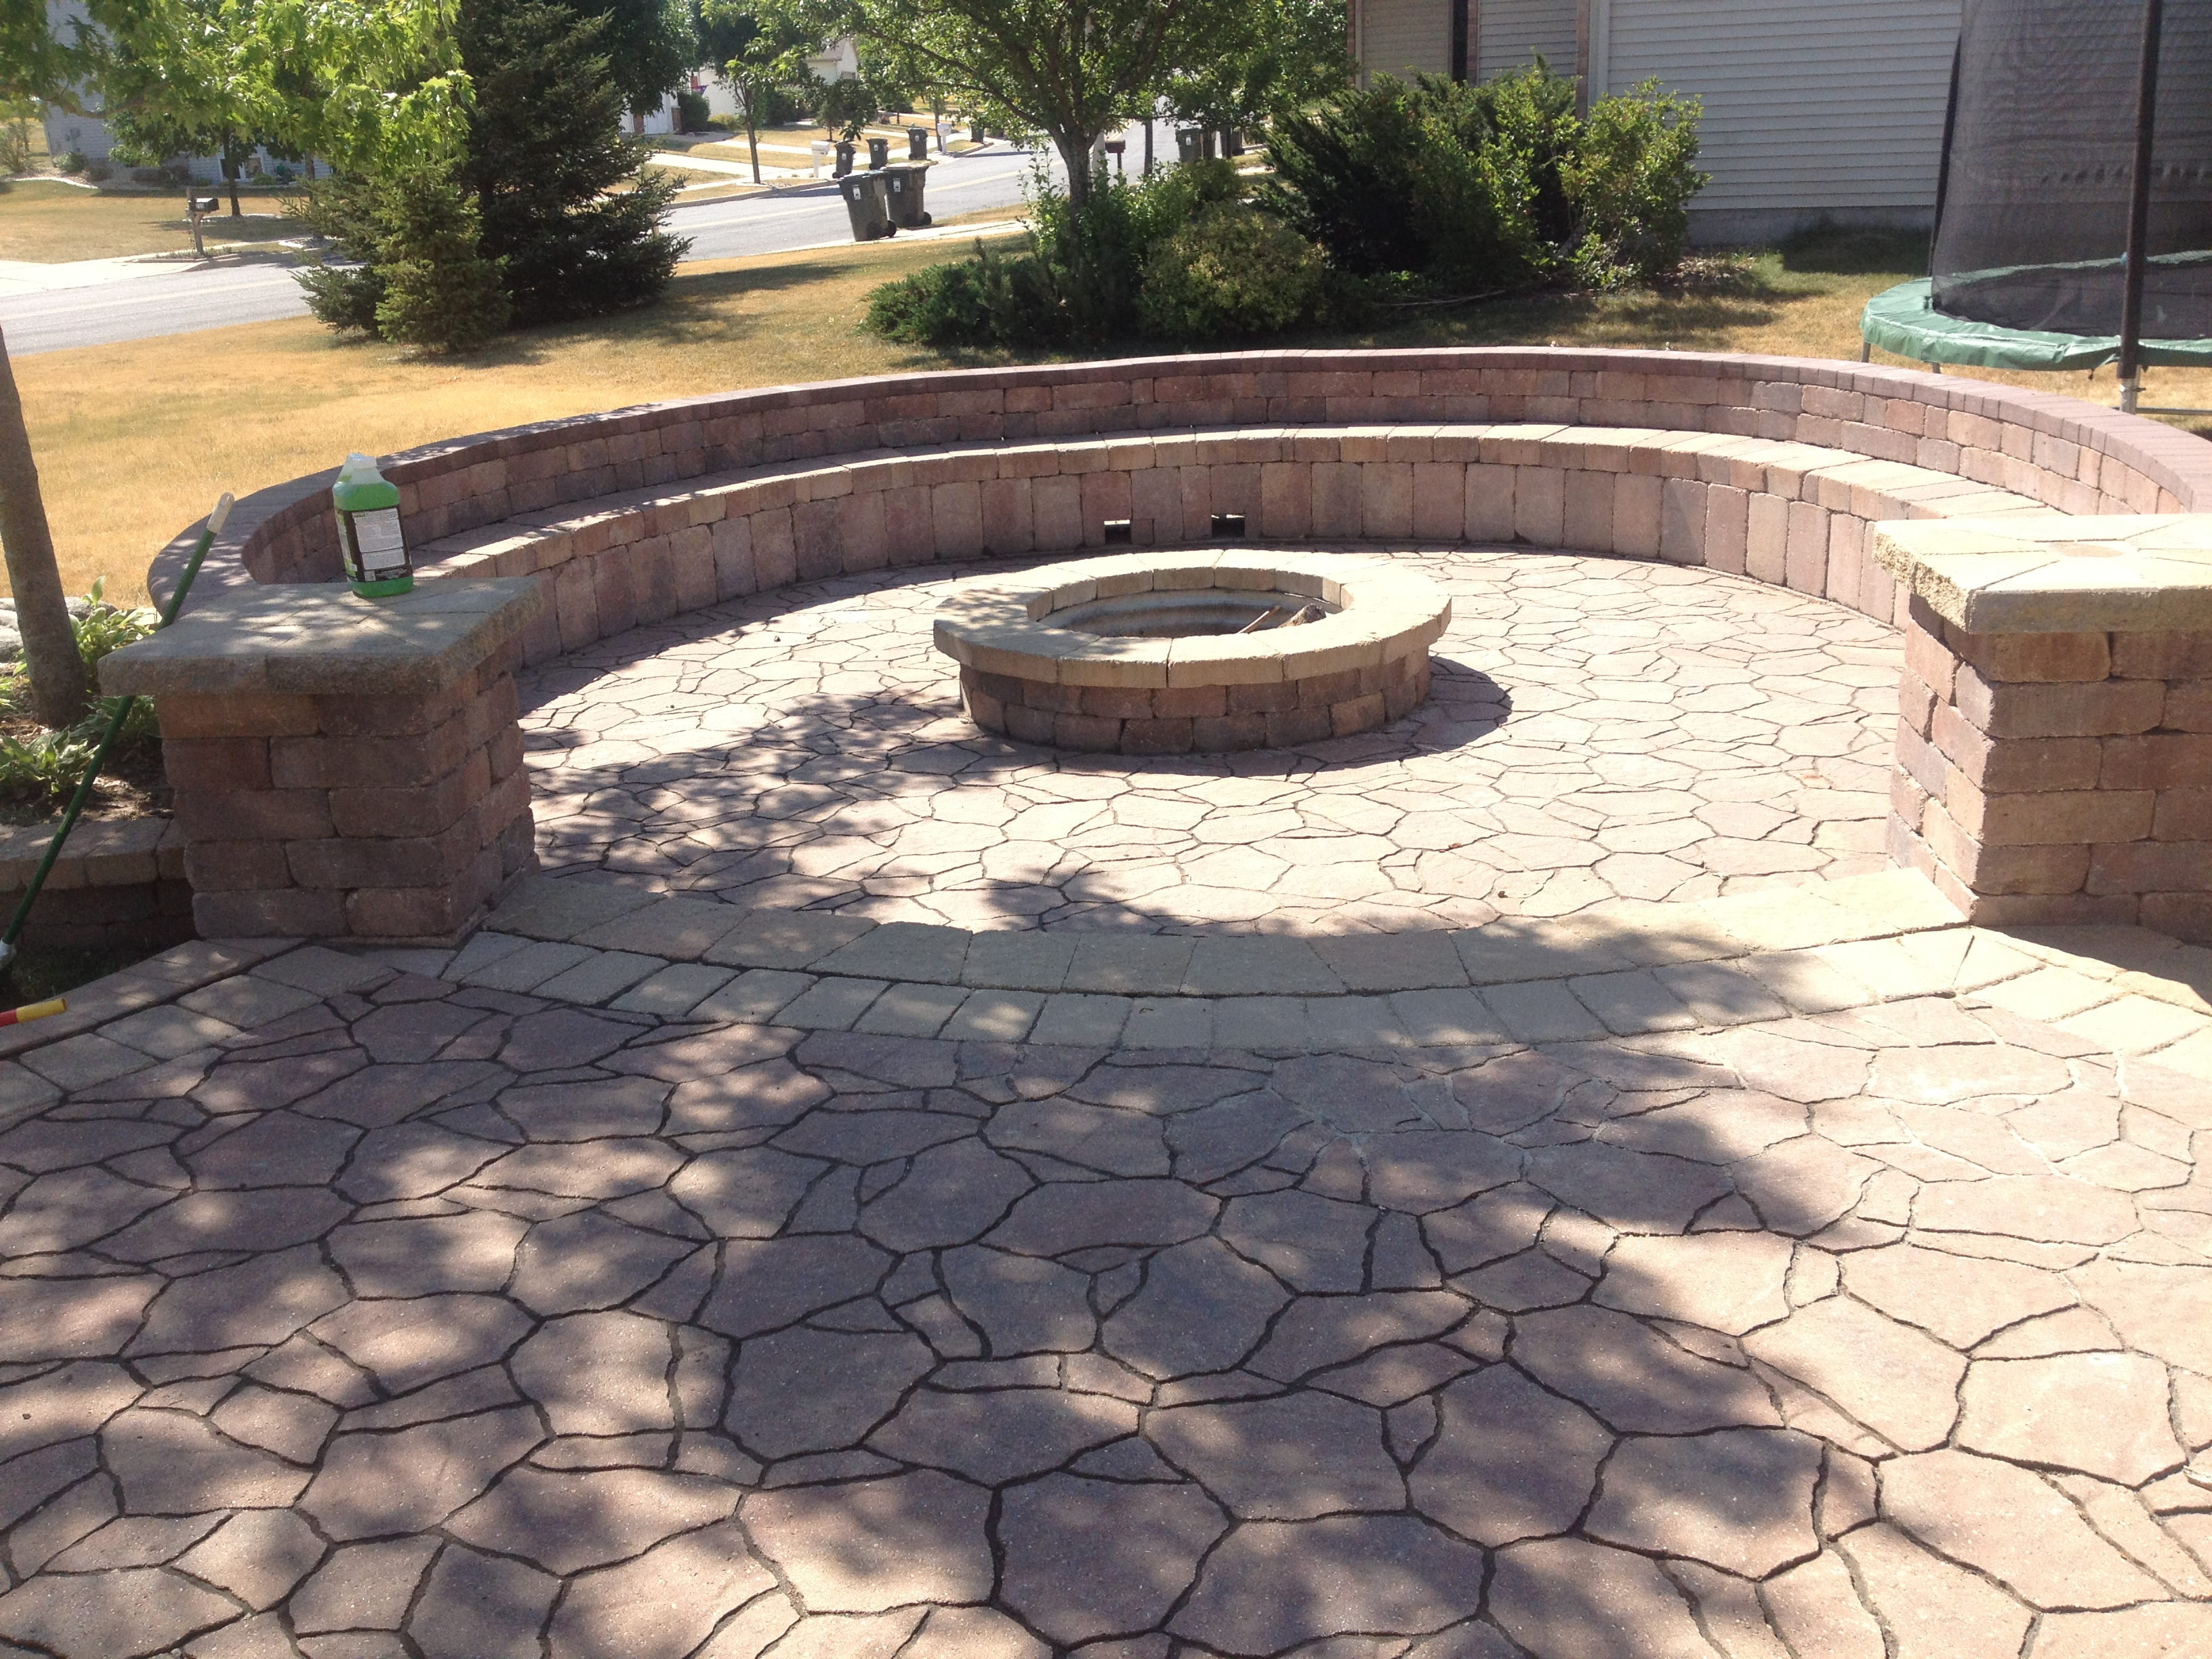 Patio Pavers | Patio Paver Ideas | Madison WI | Marvins Brick Pavers |  Marvinu0027s Brick Pavers